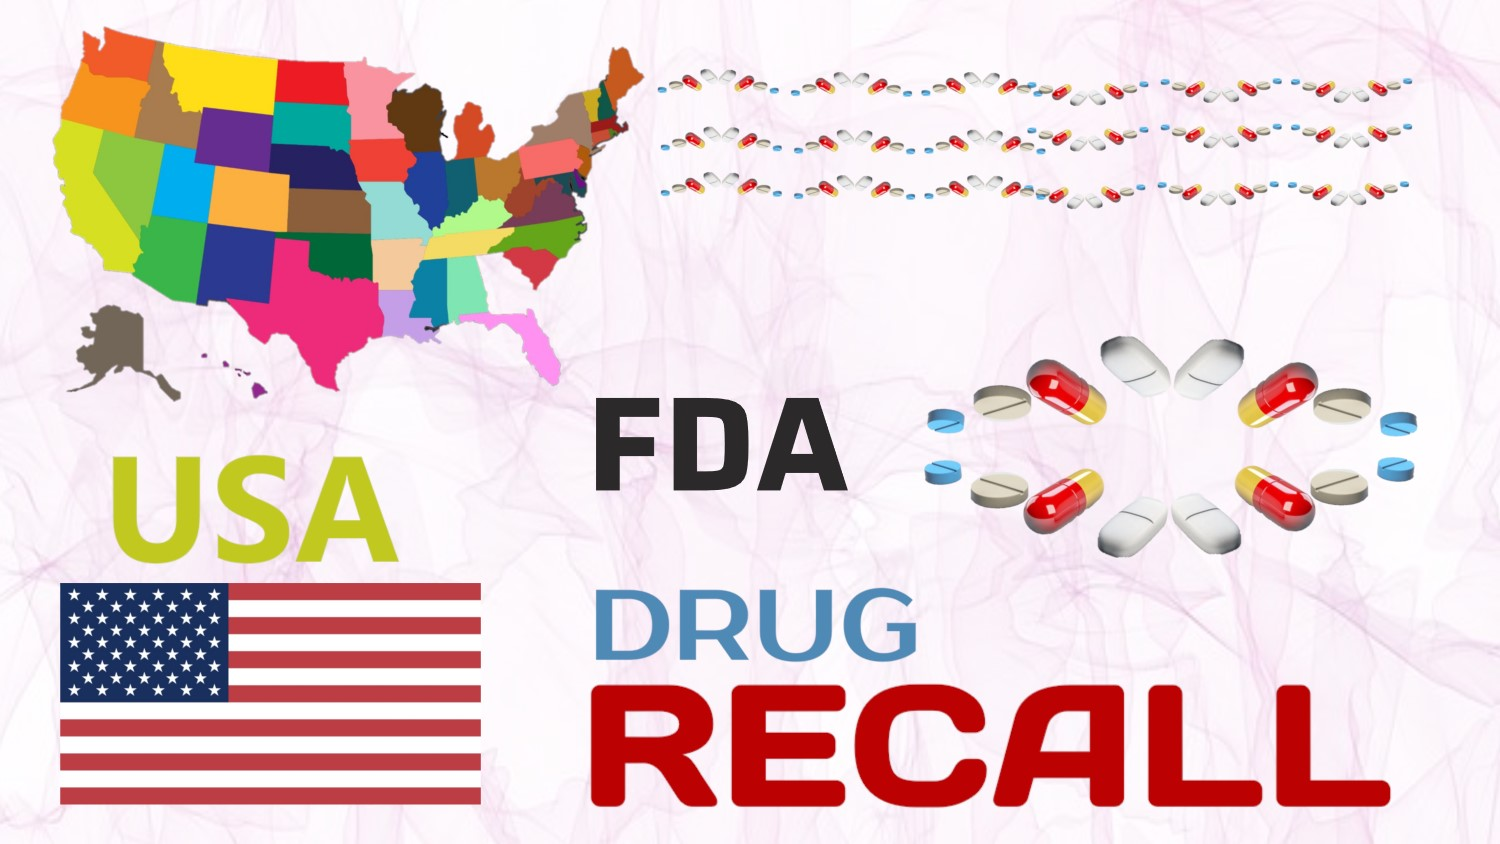 Drug Recall in USA